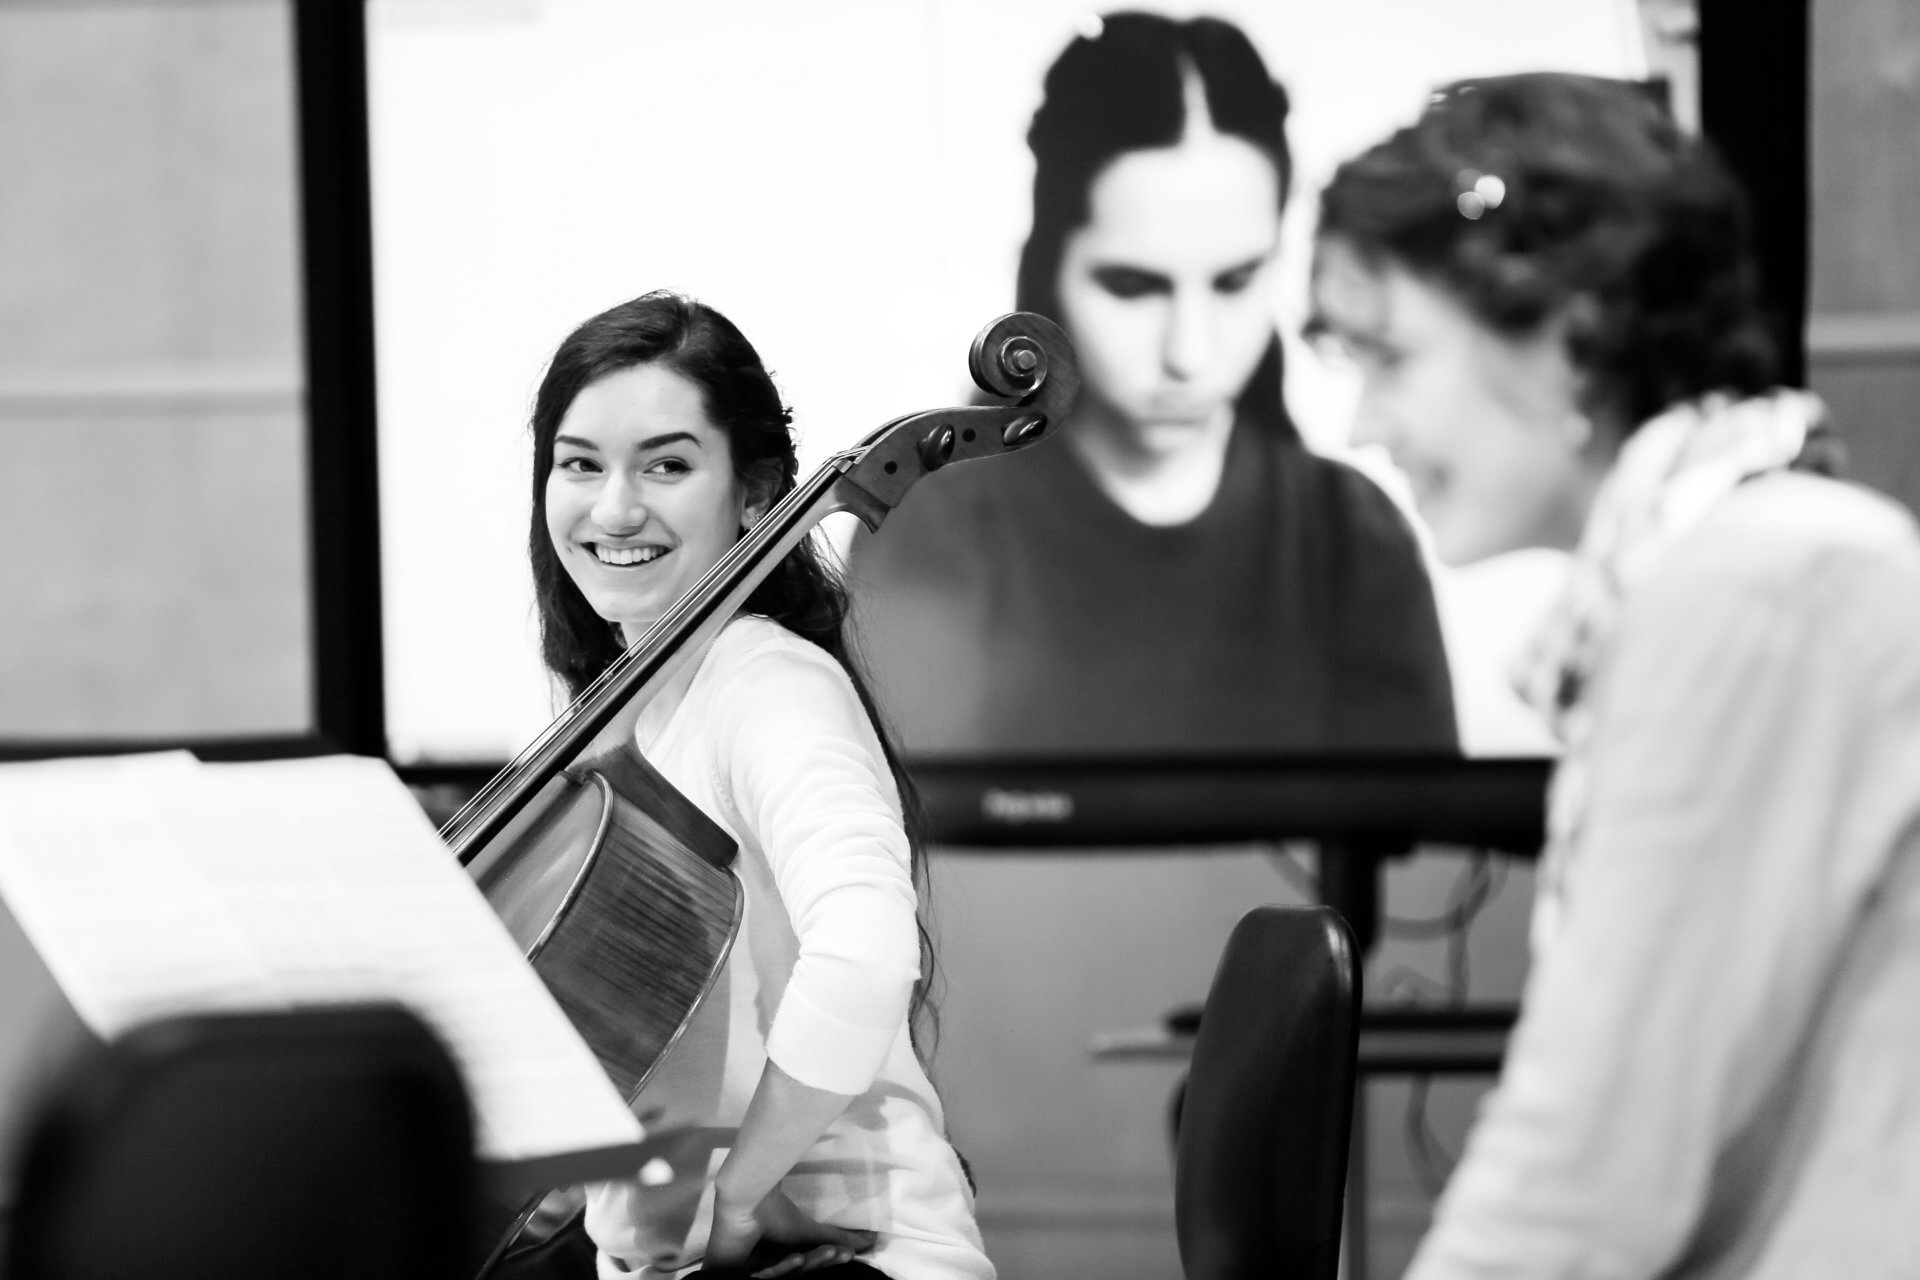 B&W image of RCS student, cellist Rebekah Lesan who is smiling and looking off to her Studio Collective colleague Madelyn Kowalski, who is also a cellist